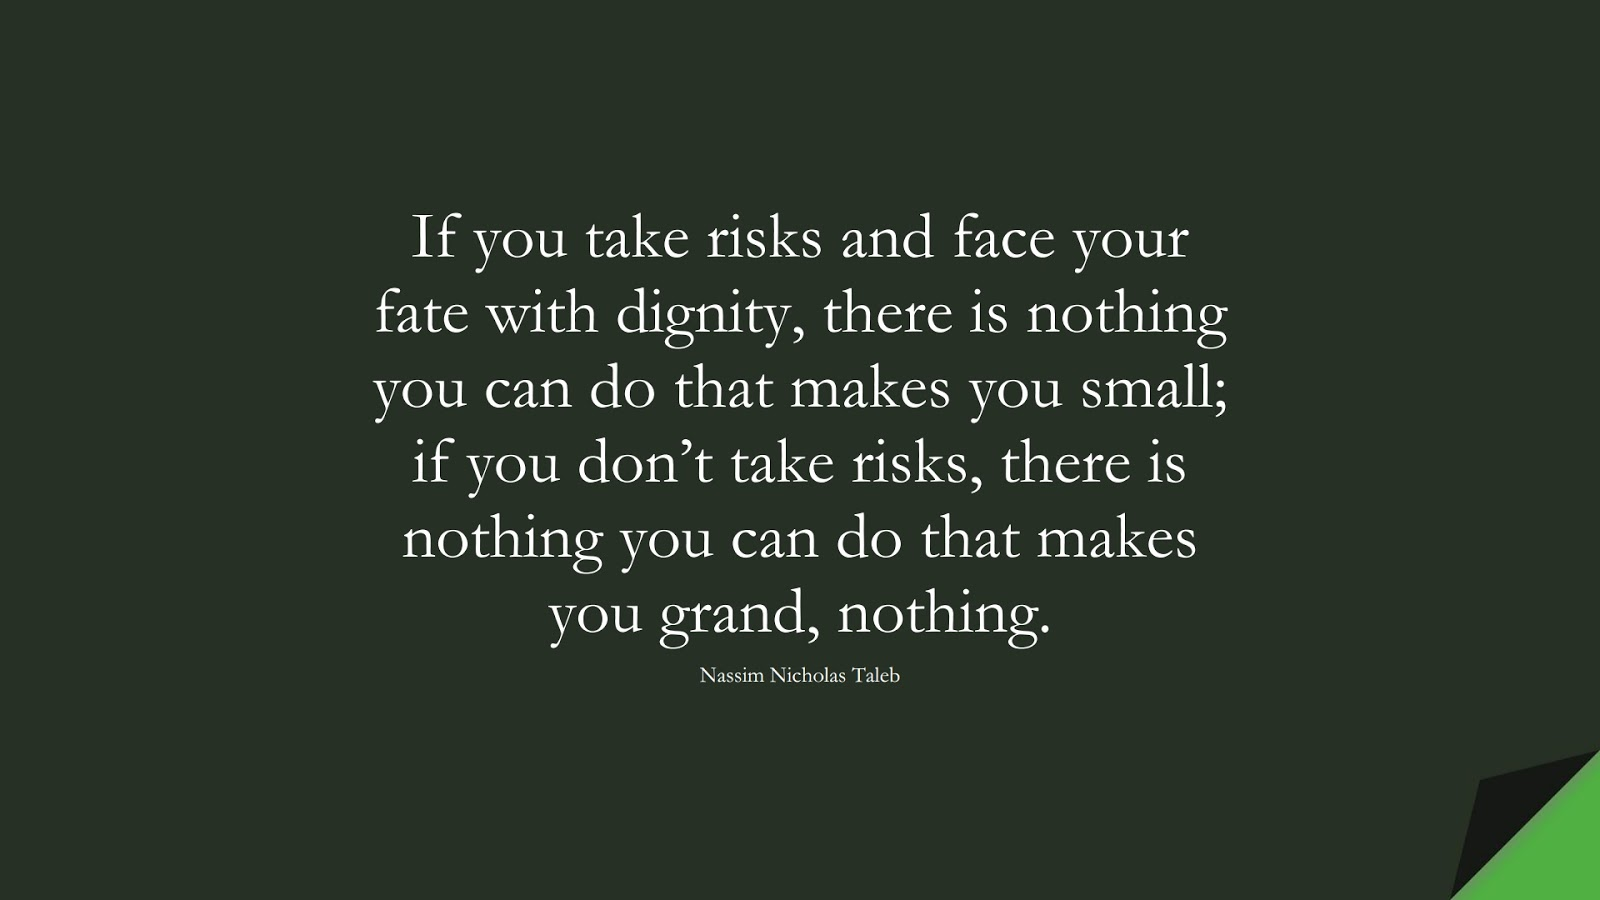 If you take risks and face your fate with dignity, there is nothing you can do that makes you small; if you don't take risks, there is nothing you can do that makes you grand, nothing. (Nassim Nicholas Taleb);  #InspirationalQuotes